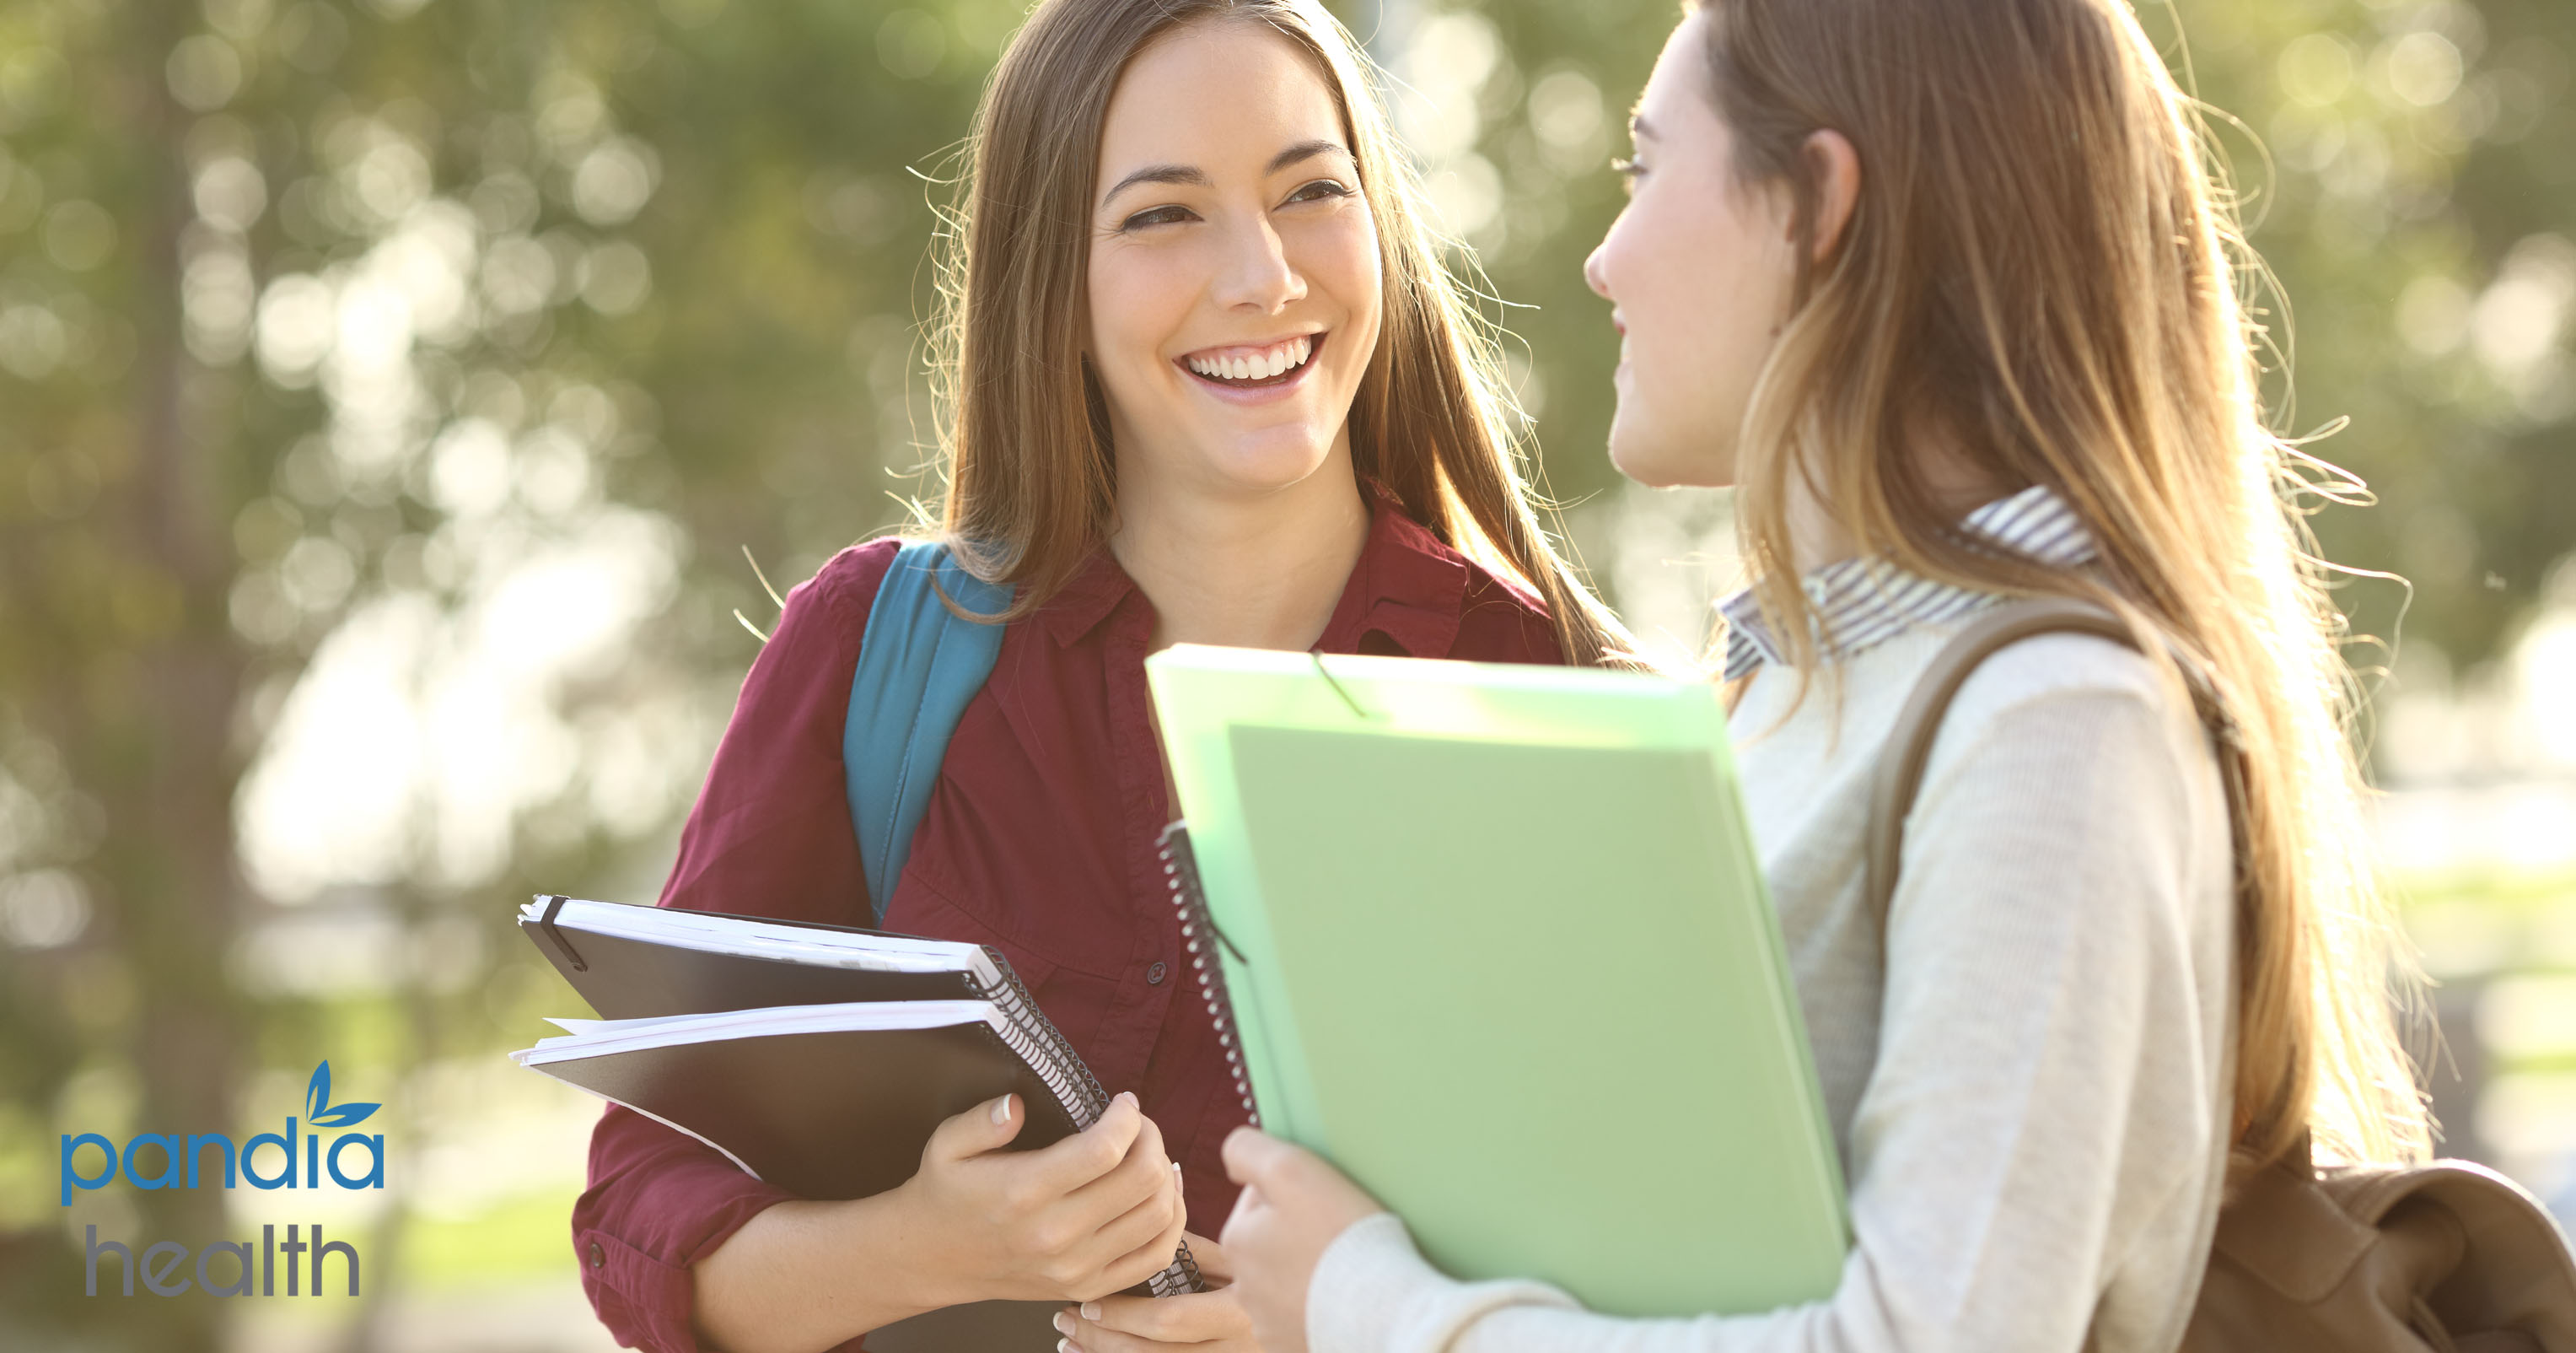 Two school girls holding notebooks and laughing